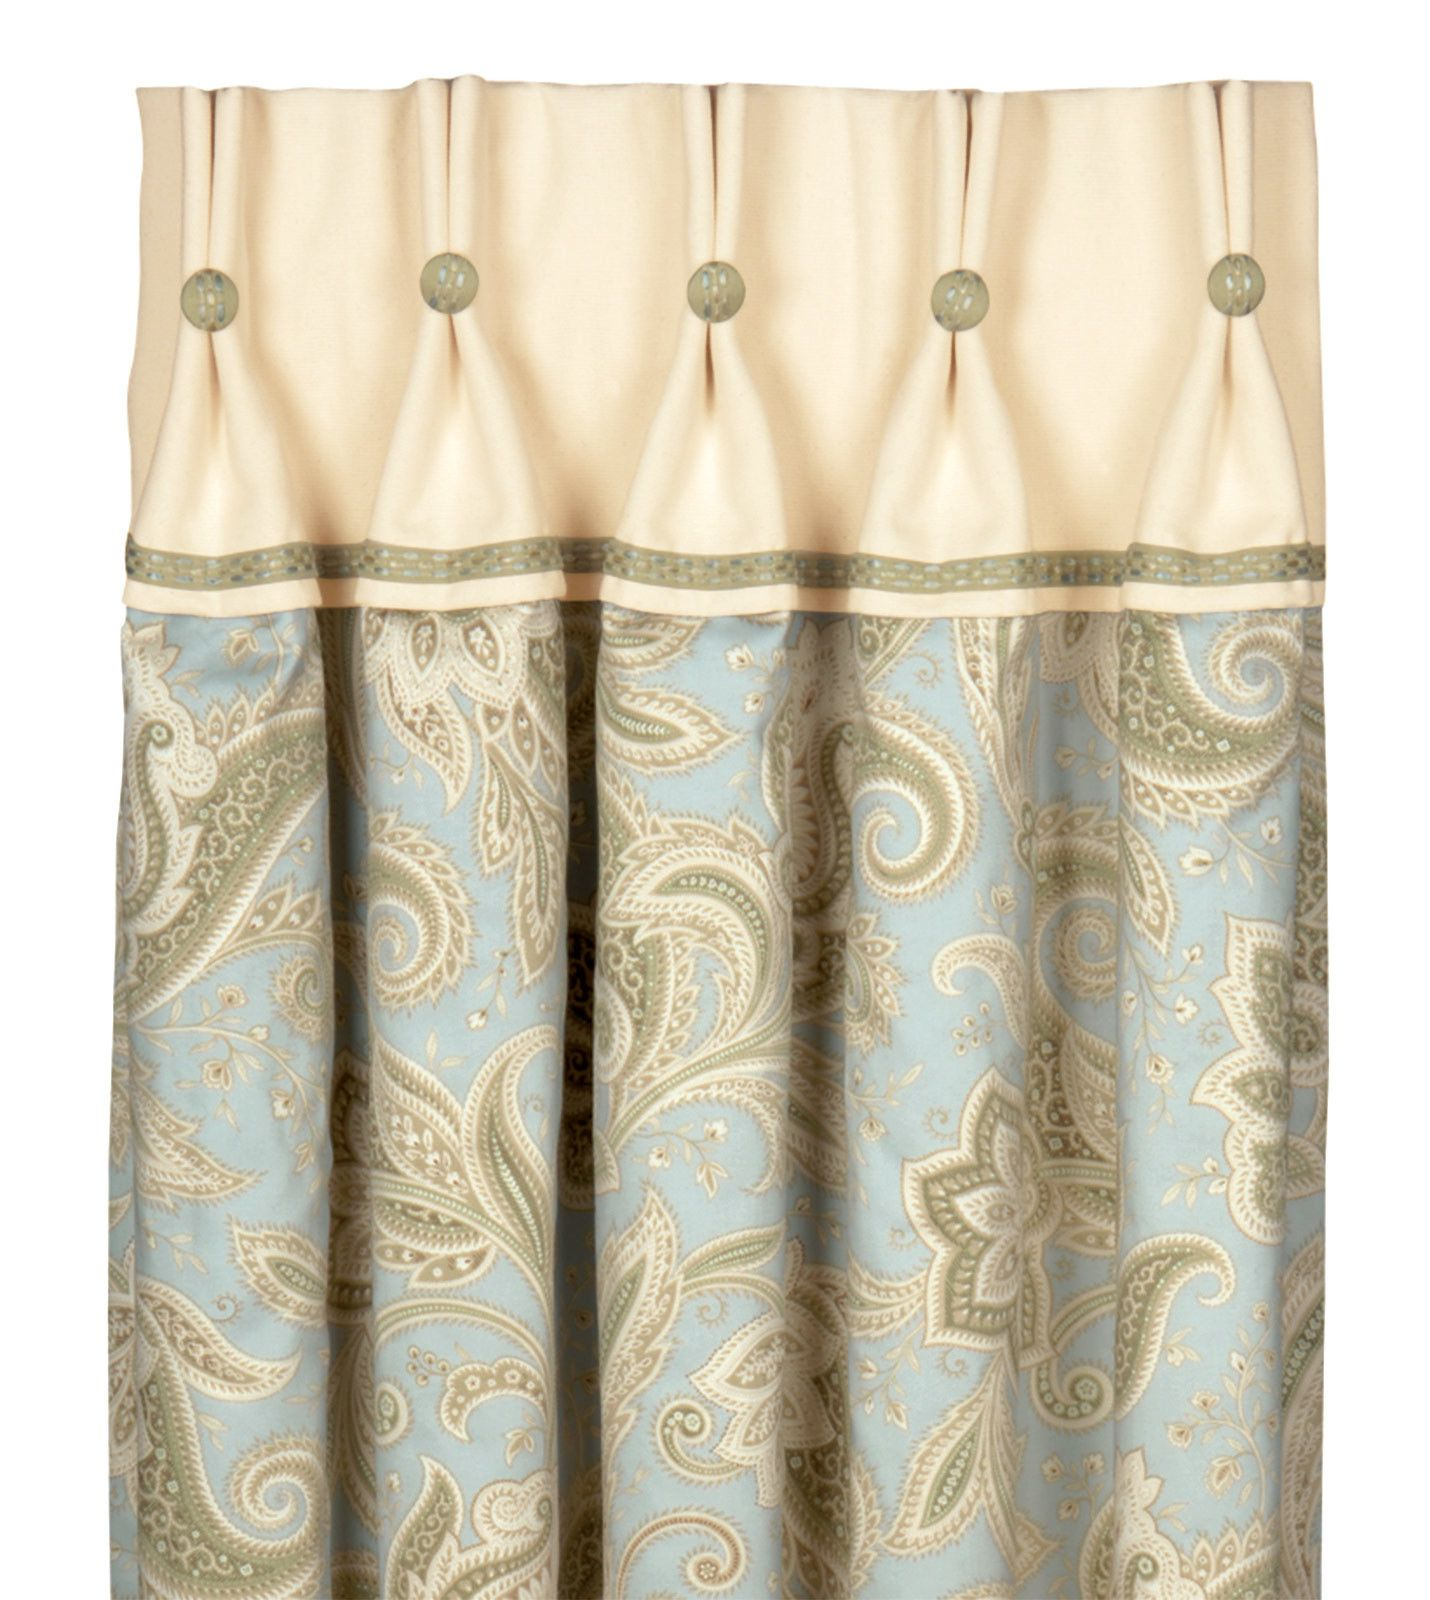 13 Incredible Ideas How To Craft Designer Shower Curtains With